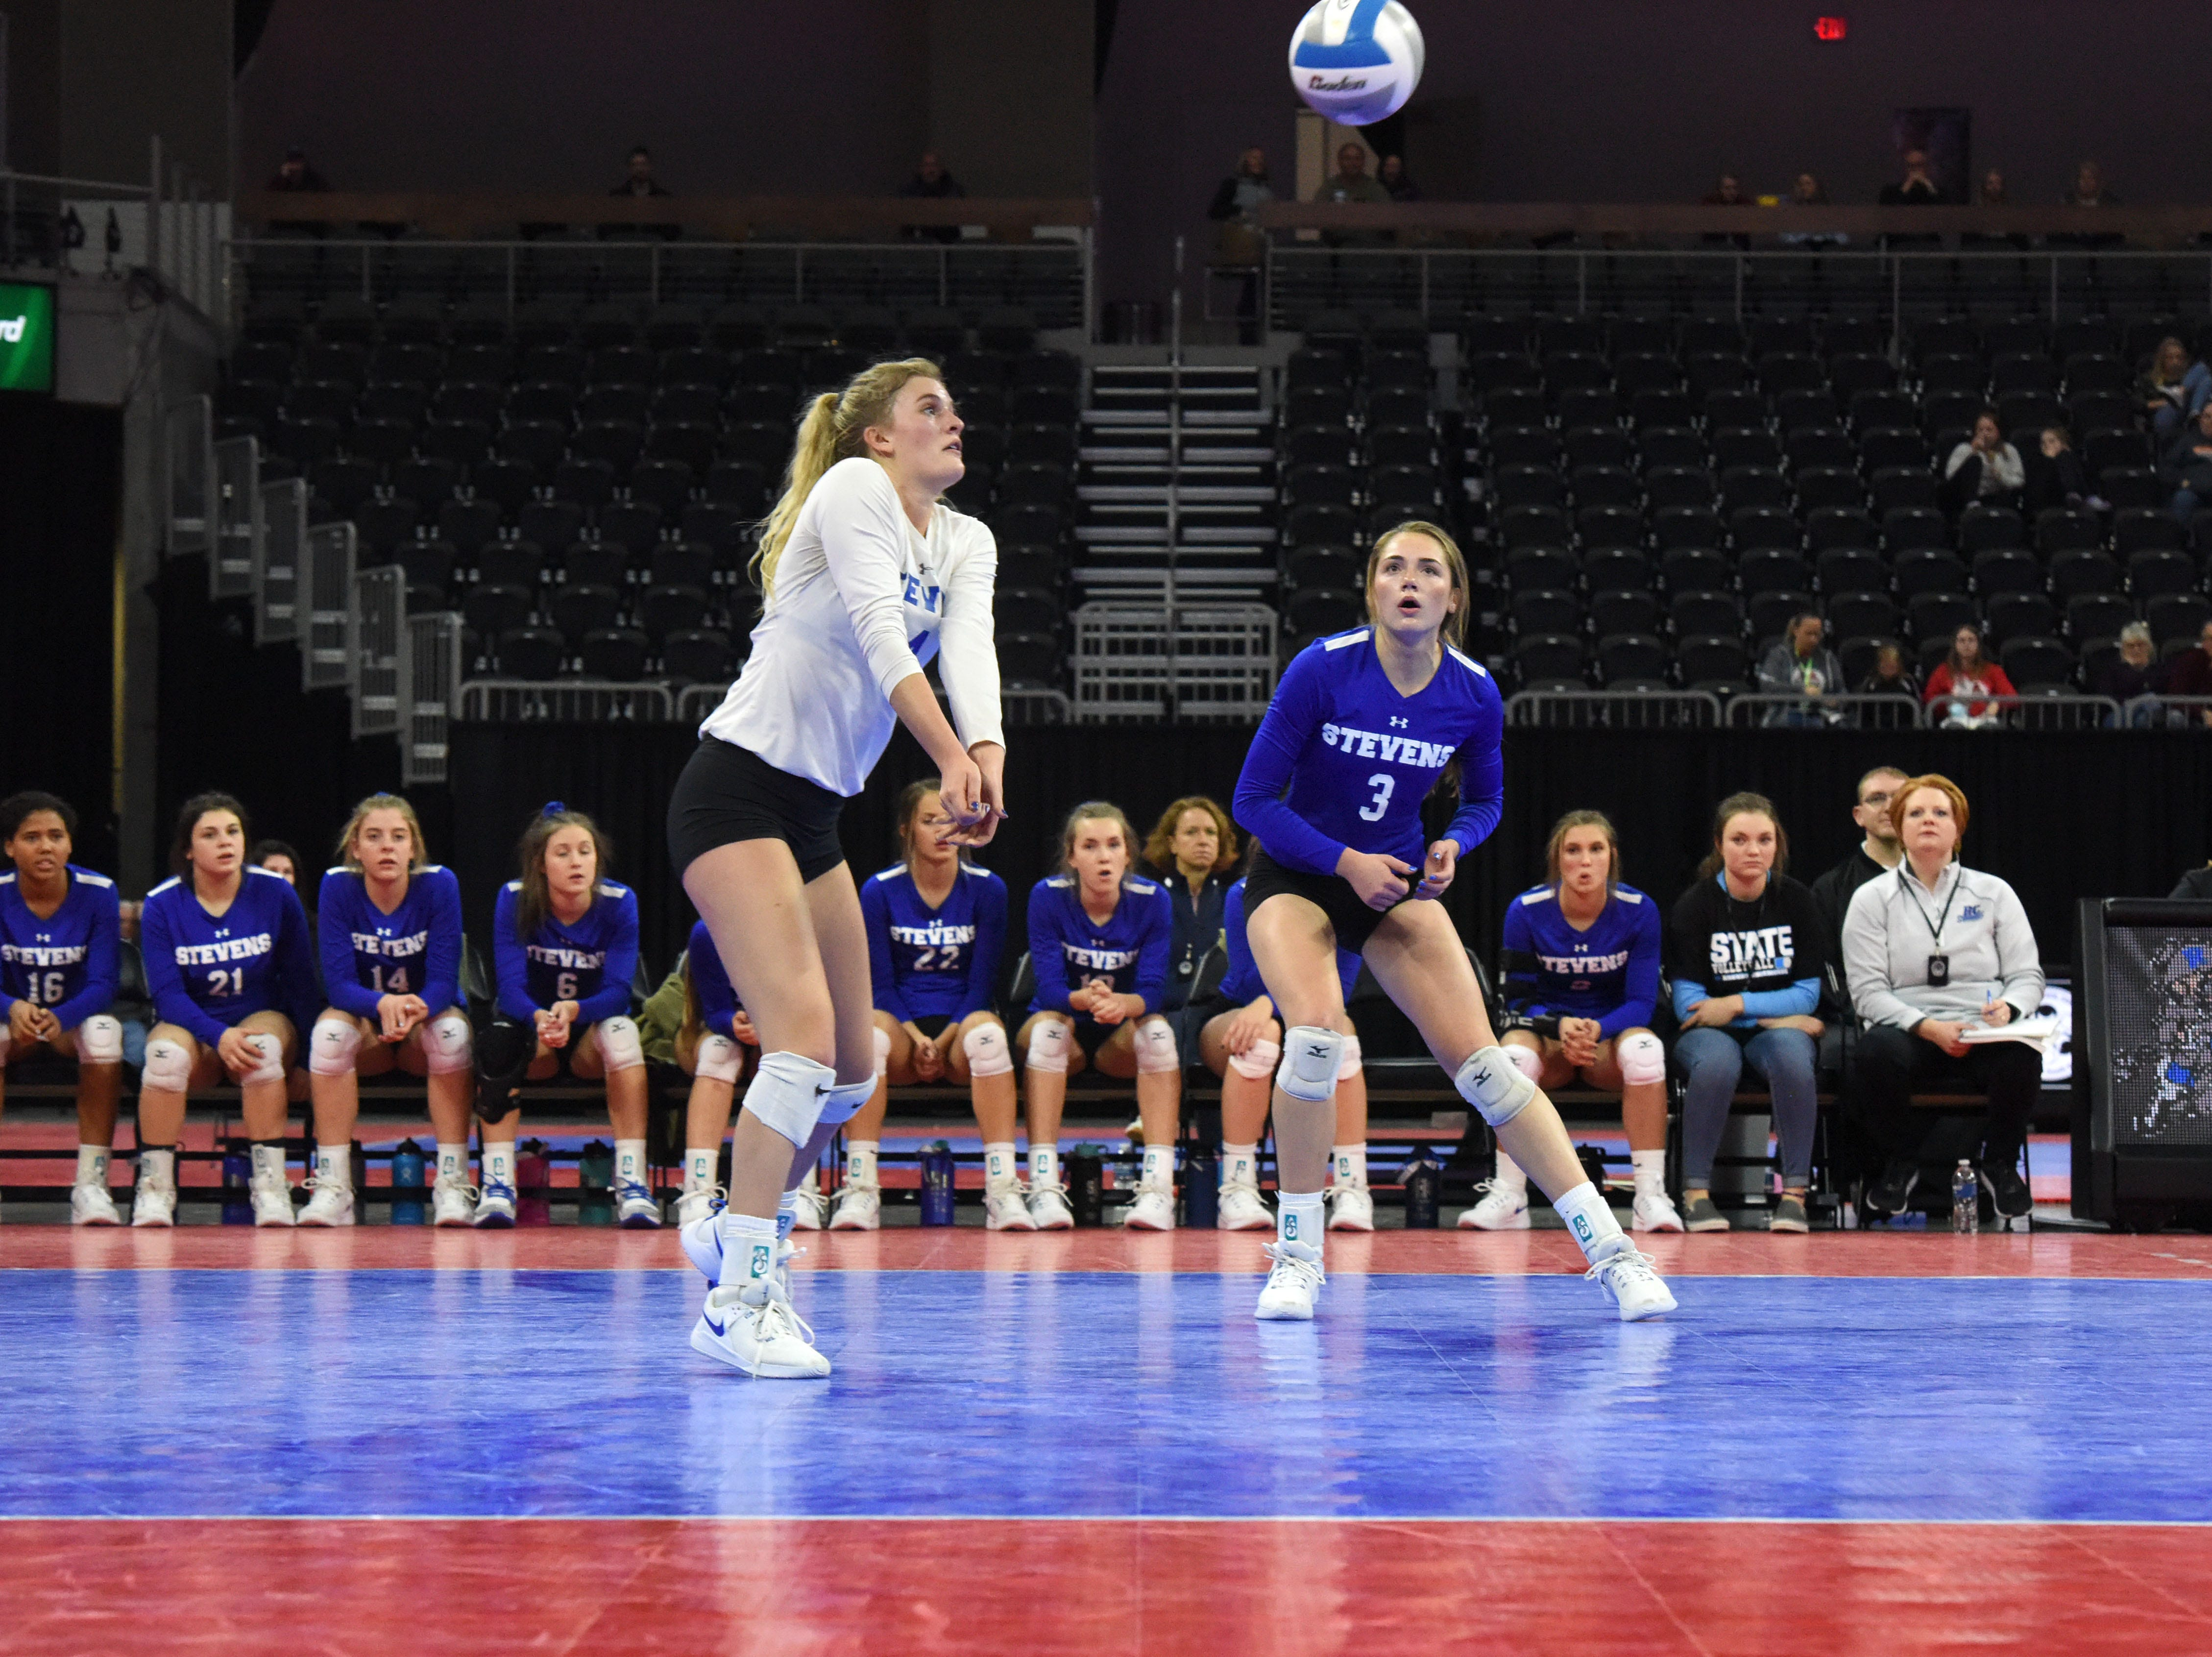 Rapid City's Laura Petik (4) bumps the ball during a match against Washington, Saturday, Nov. 17, 2018, at the Denny Sanford Premier Center in Sioux Falls, S.D.